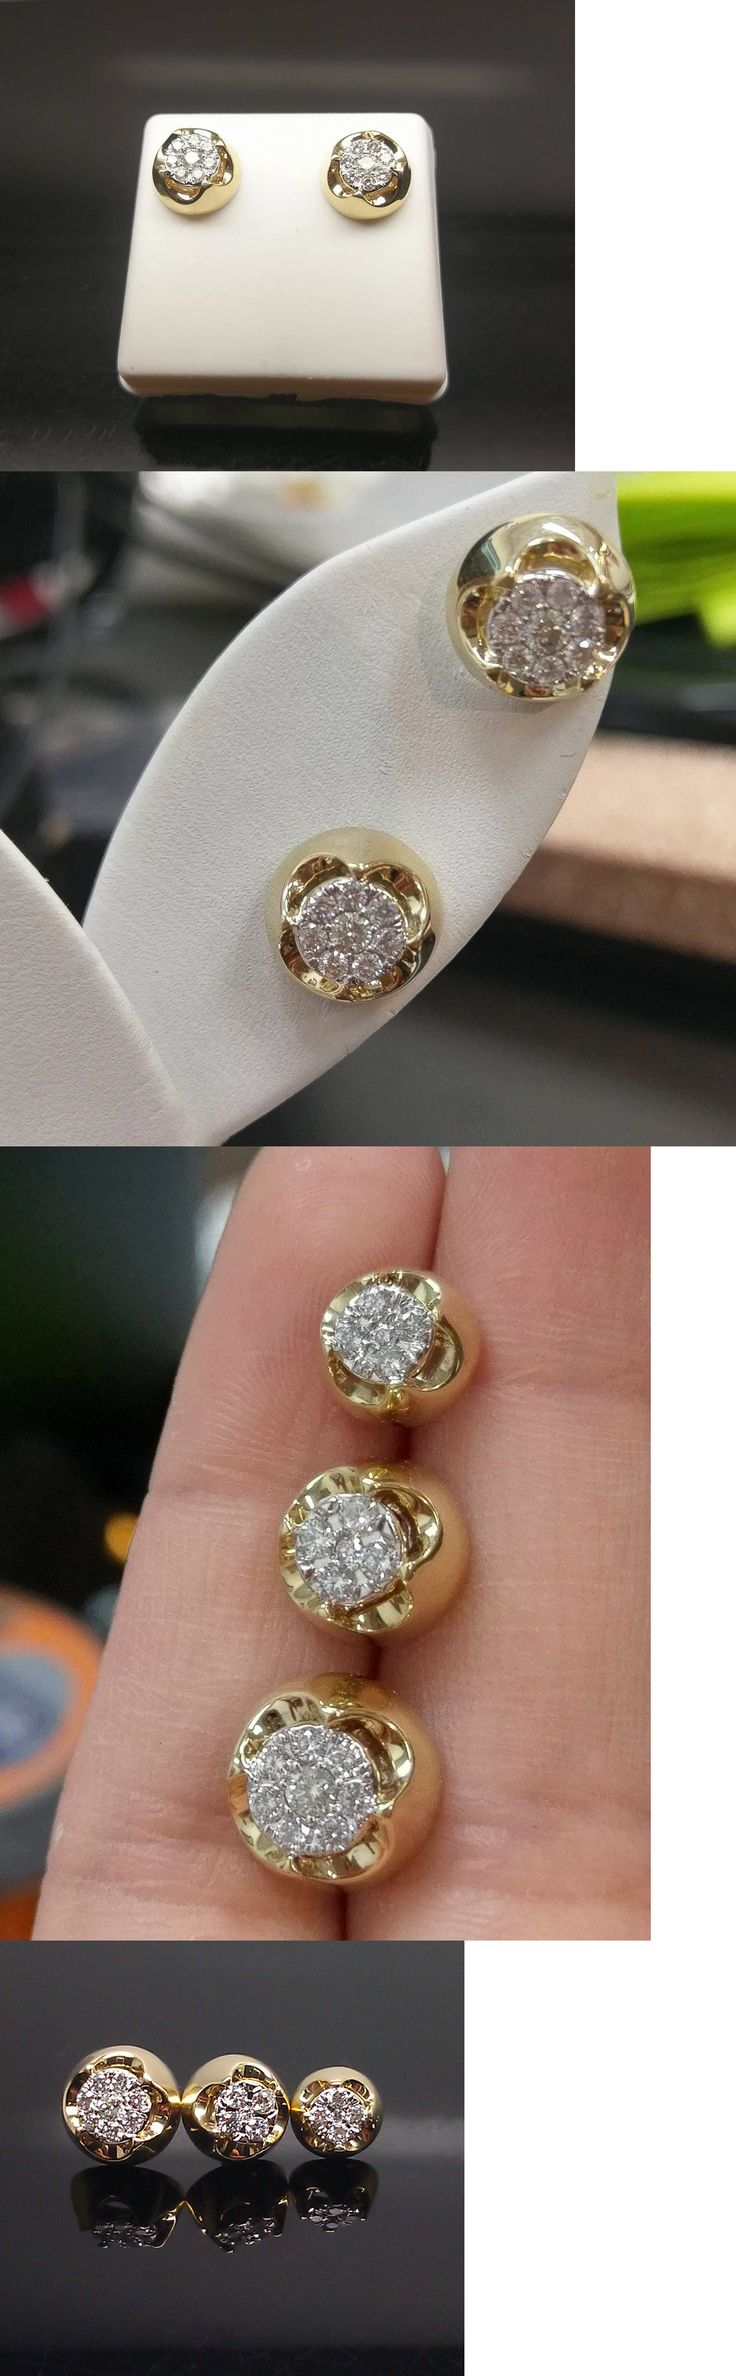 Earrings Studs 14085: 14K Yellow Gold Stud With Genuine Diamonds For Men And Women In 6 Mm 8 Mm 10 Mm -> BUY IT NOW ONLY: $459.99 on eBay!